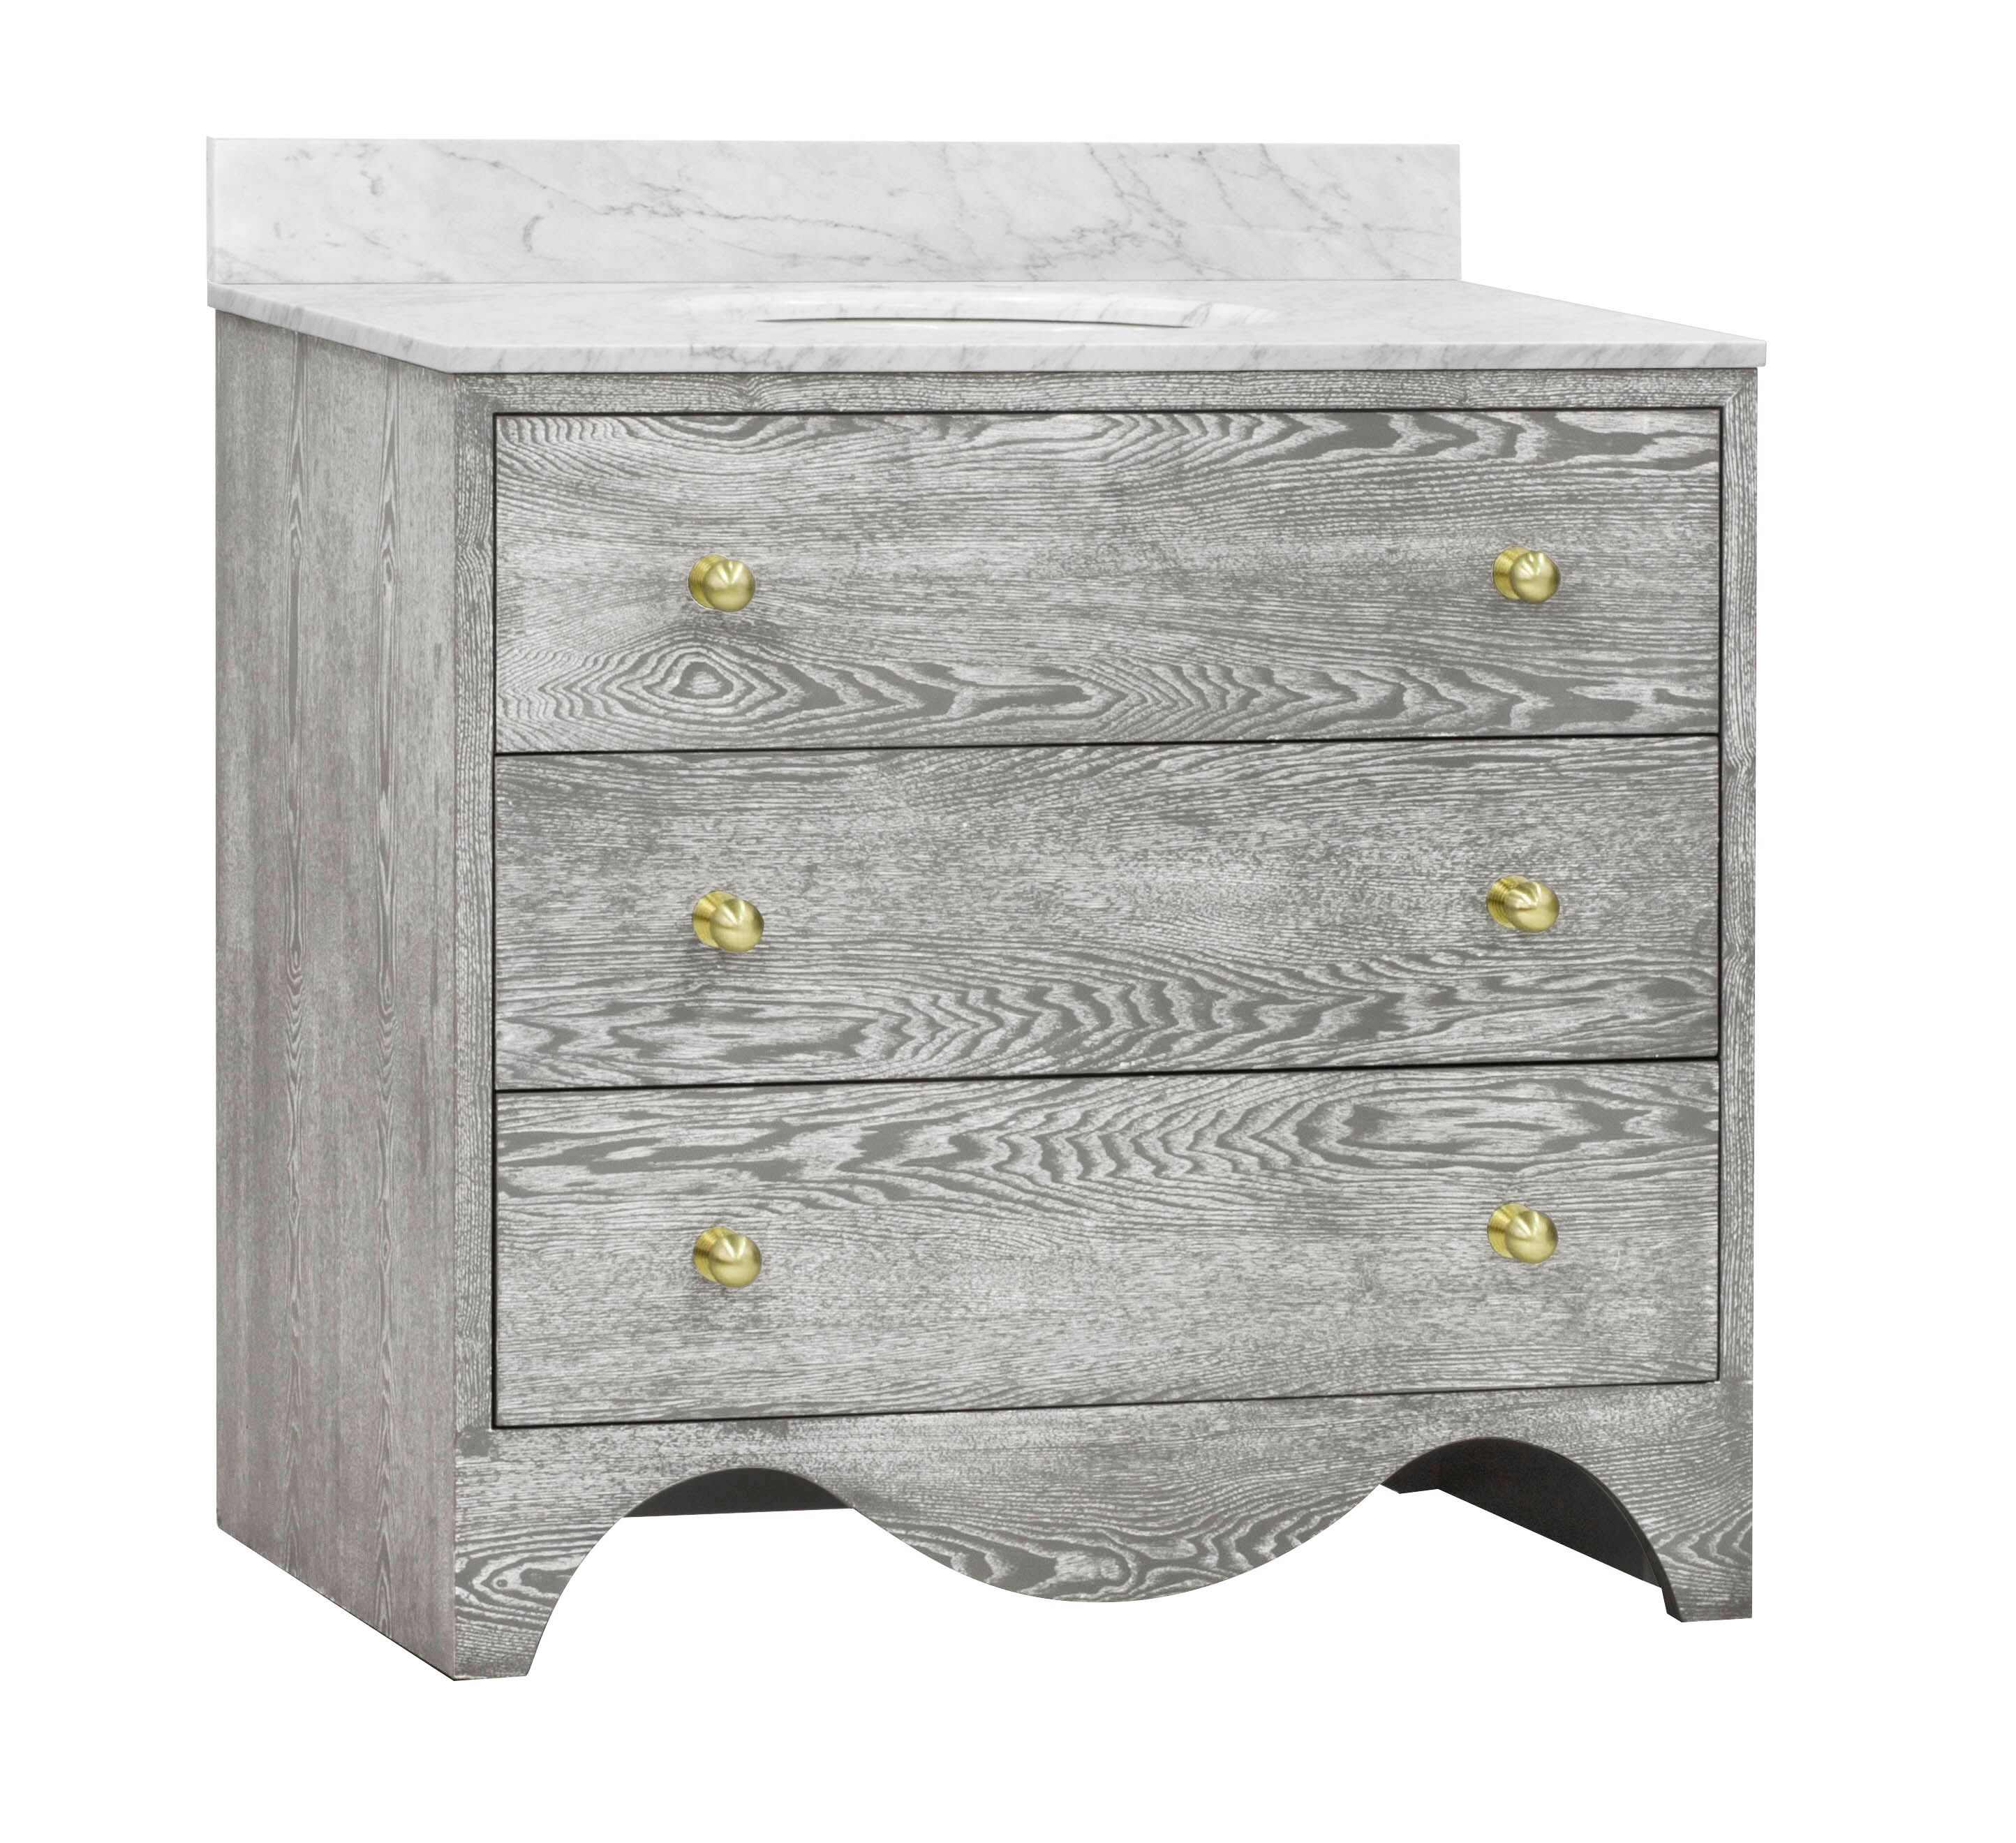 "36"" Isaac Edwards Collection Grey Cerused Oak Bath Vanity with White Marble Top, Hardware and Backsplash Option"